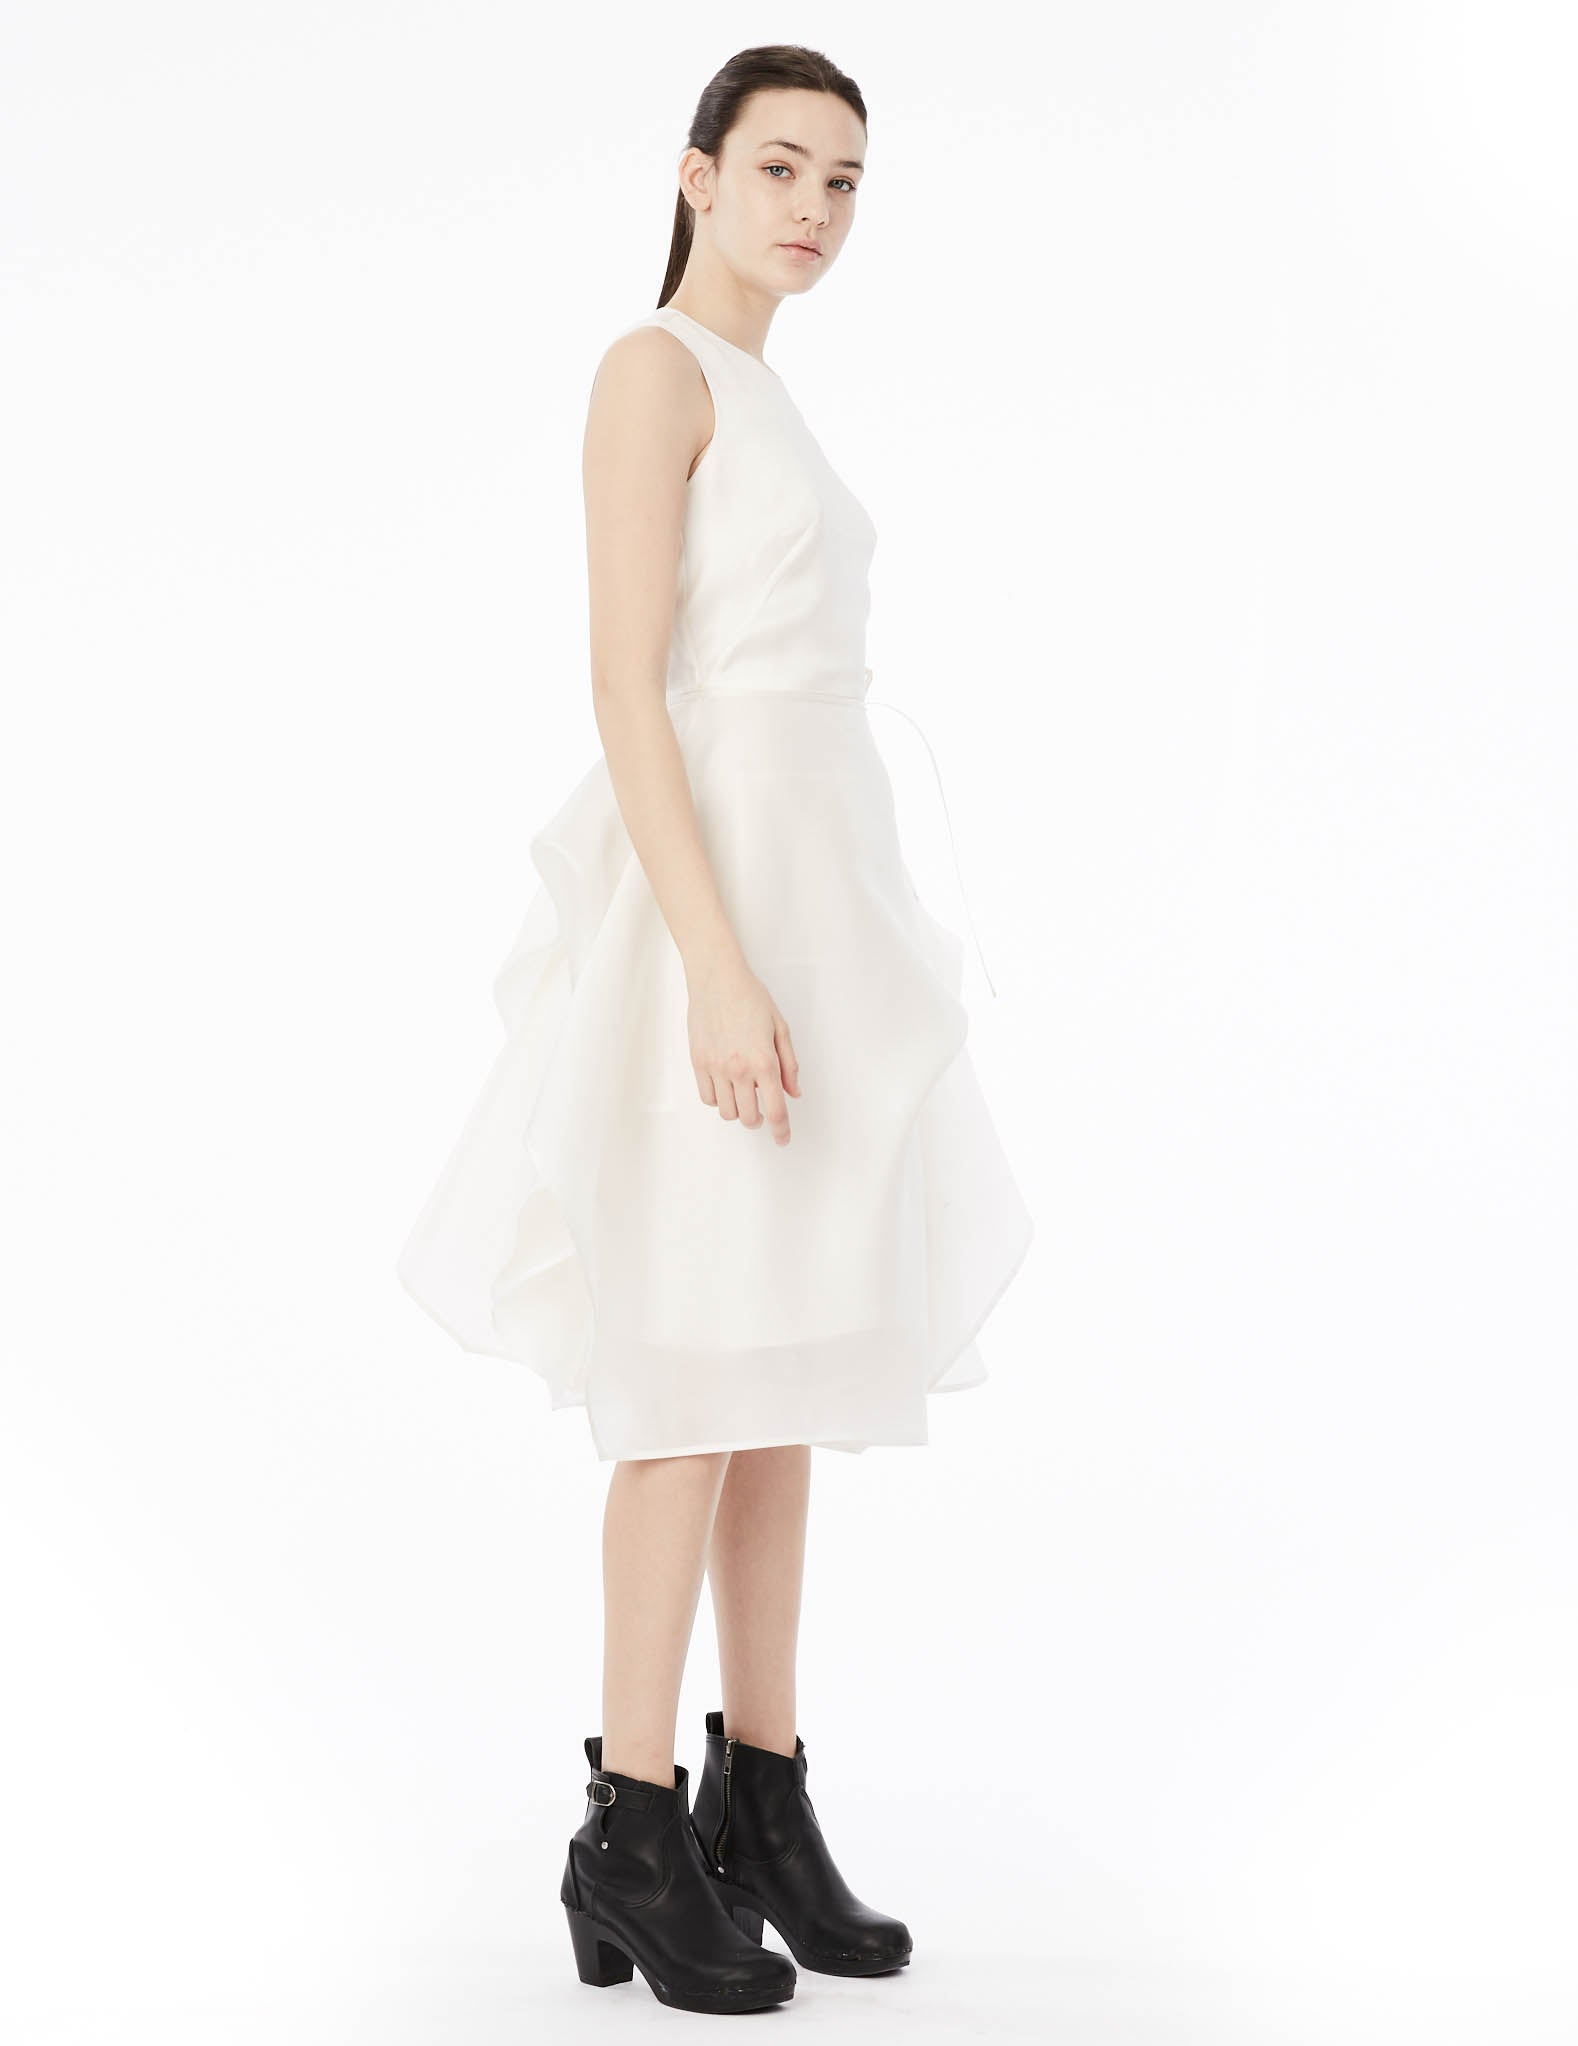 918d35f6e76 short satin organza gown with sleeveless top and draped skirt